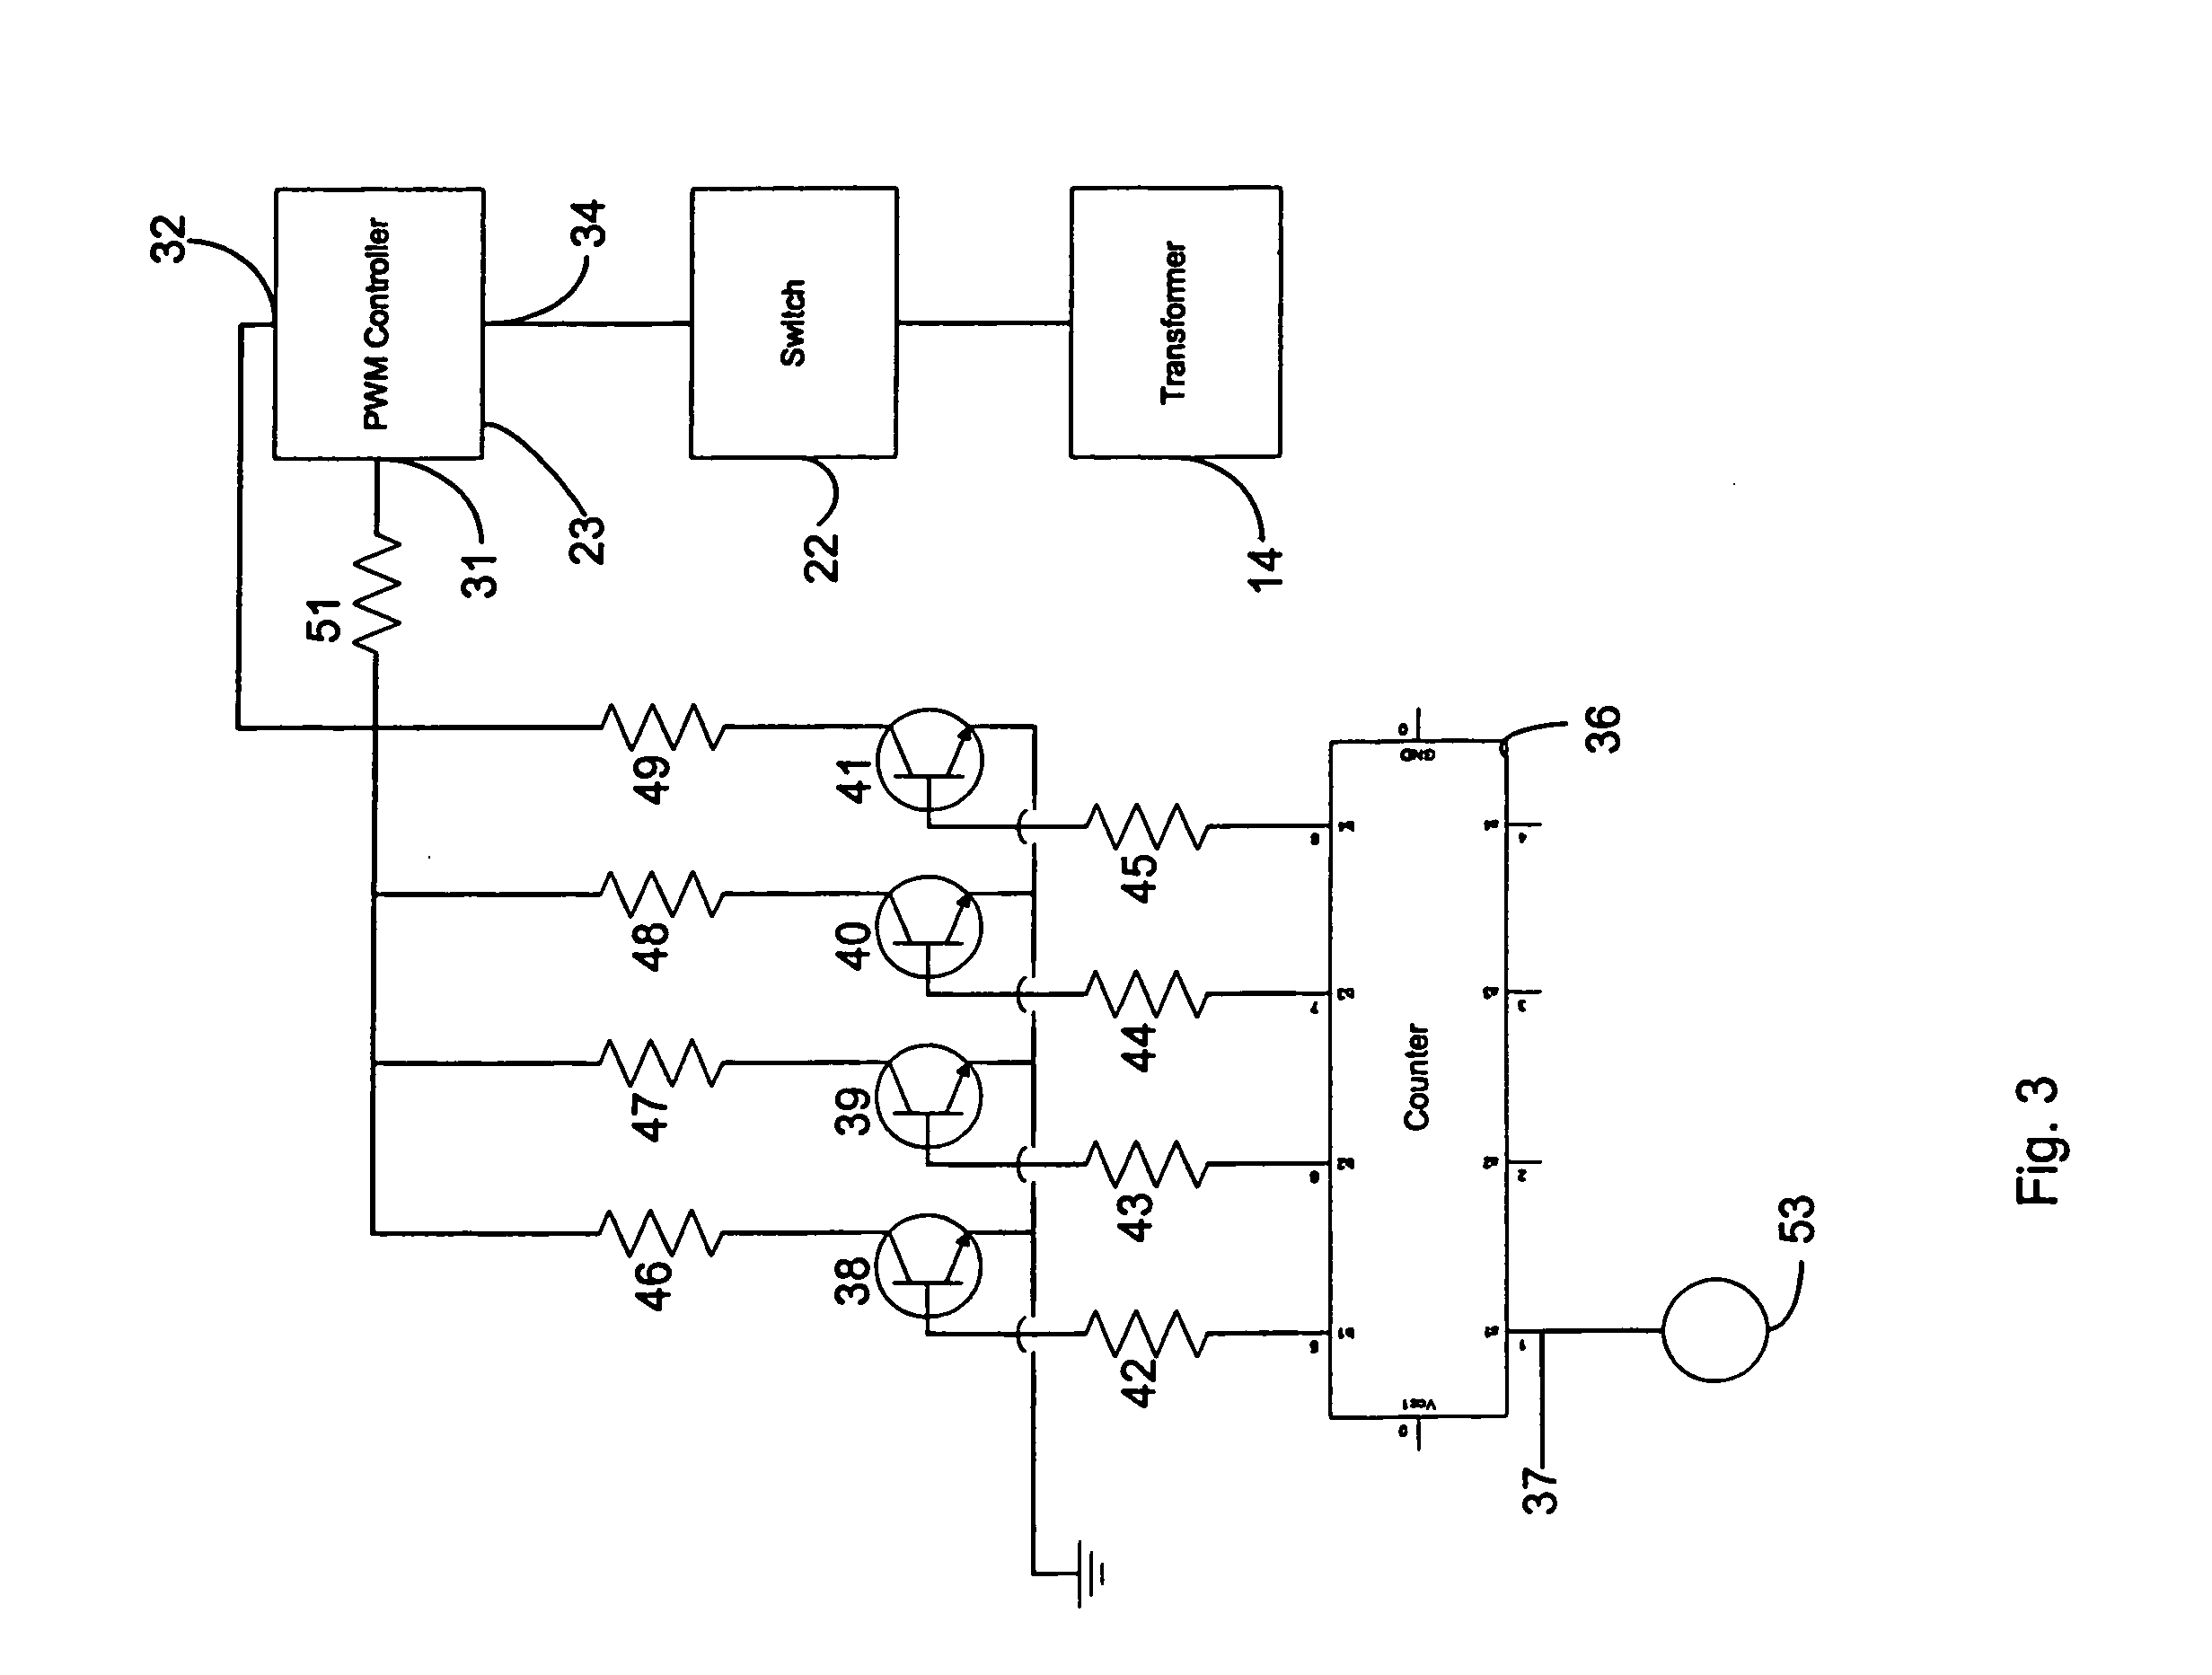 Battery Charger Transformer Wiring Diagram from schematron.org